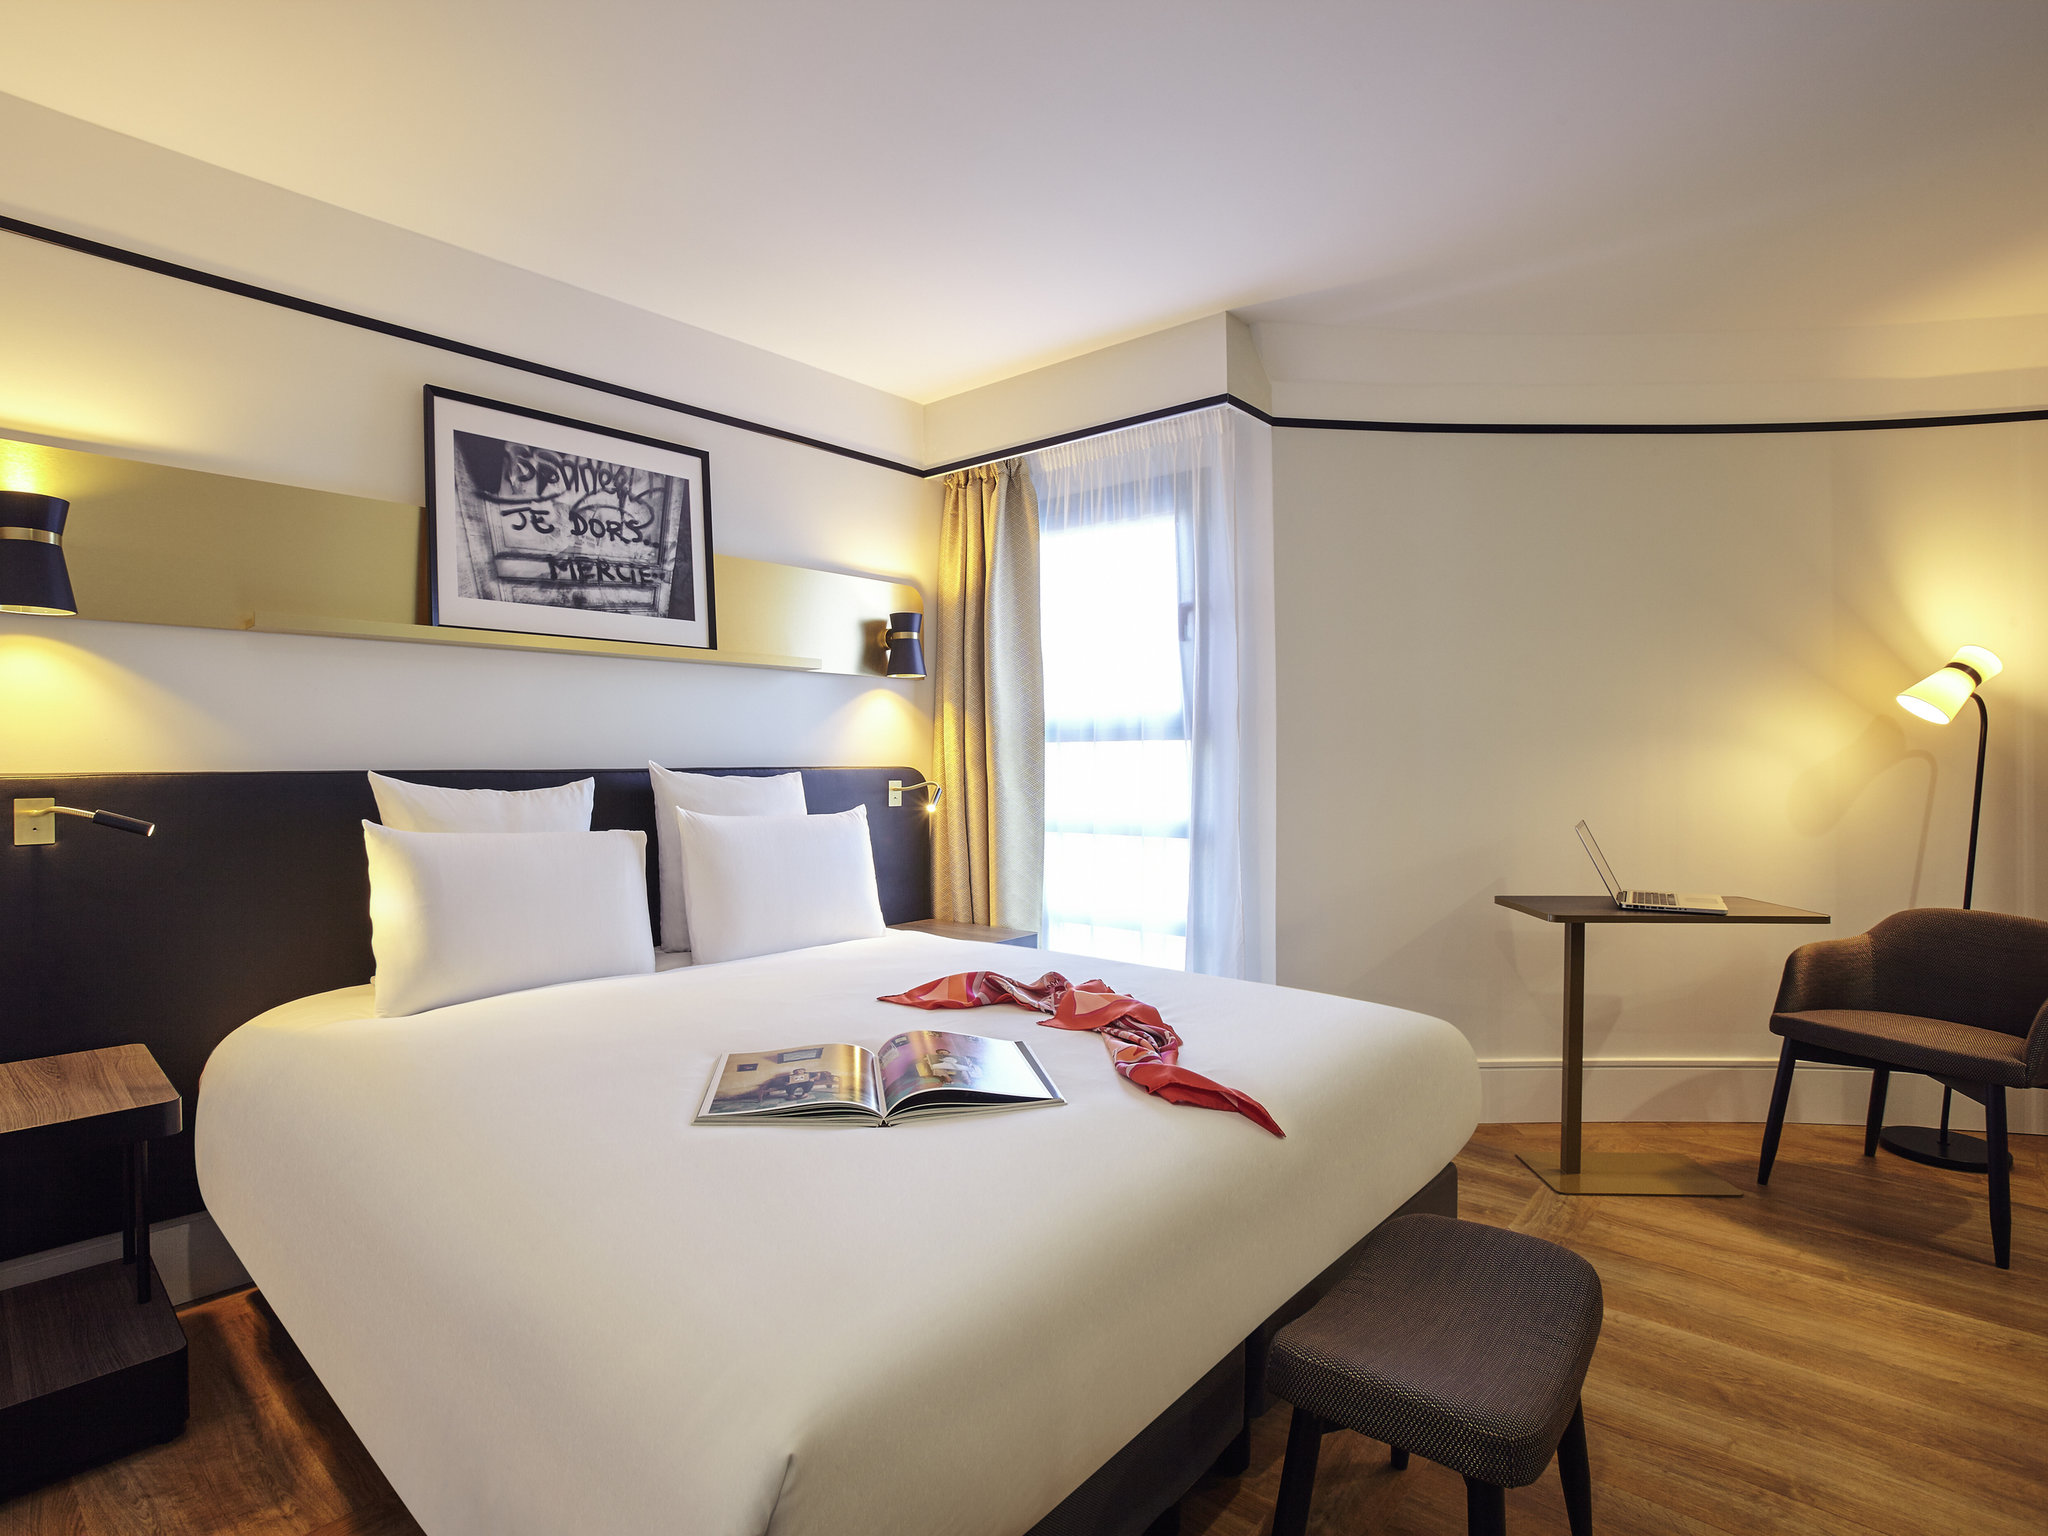 Отель — Hôtel Mercure Paris Saint-Ouen (ex Manhattan)